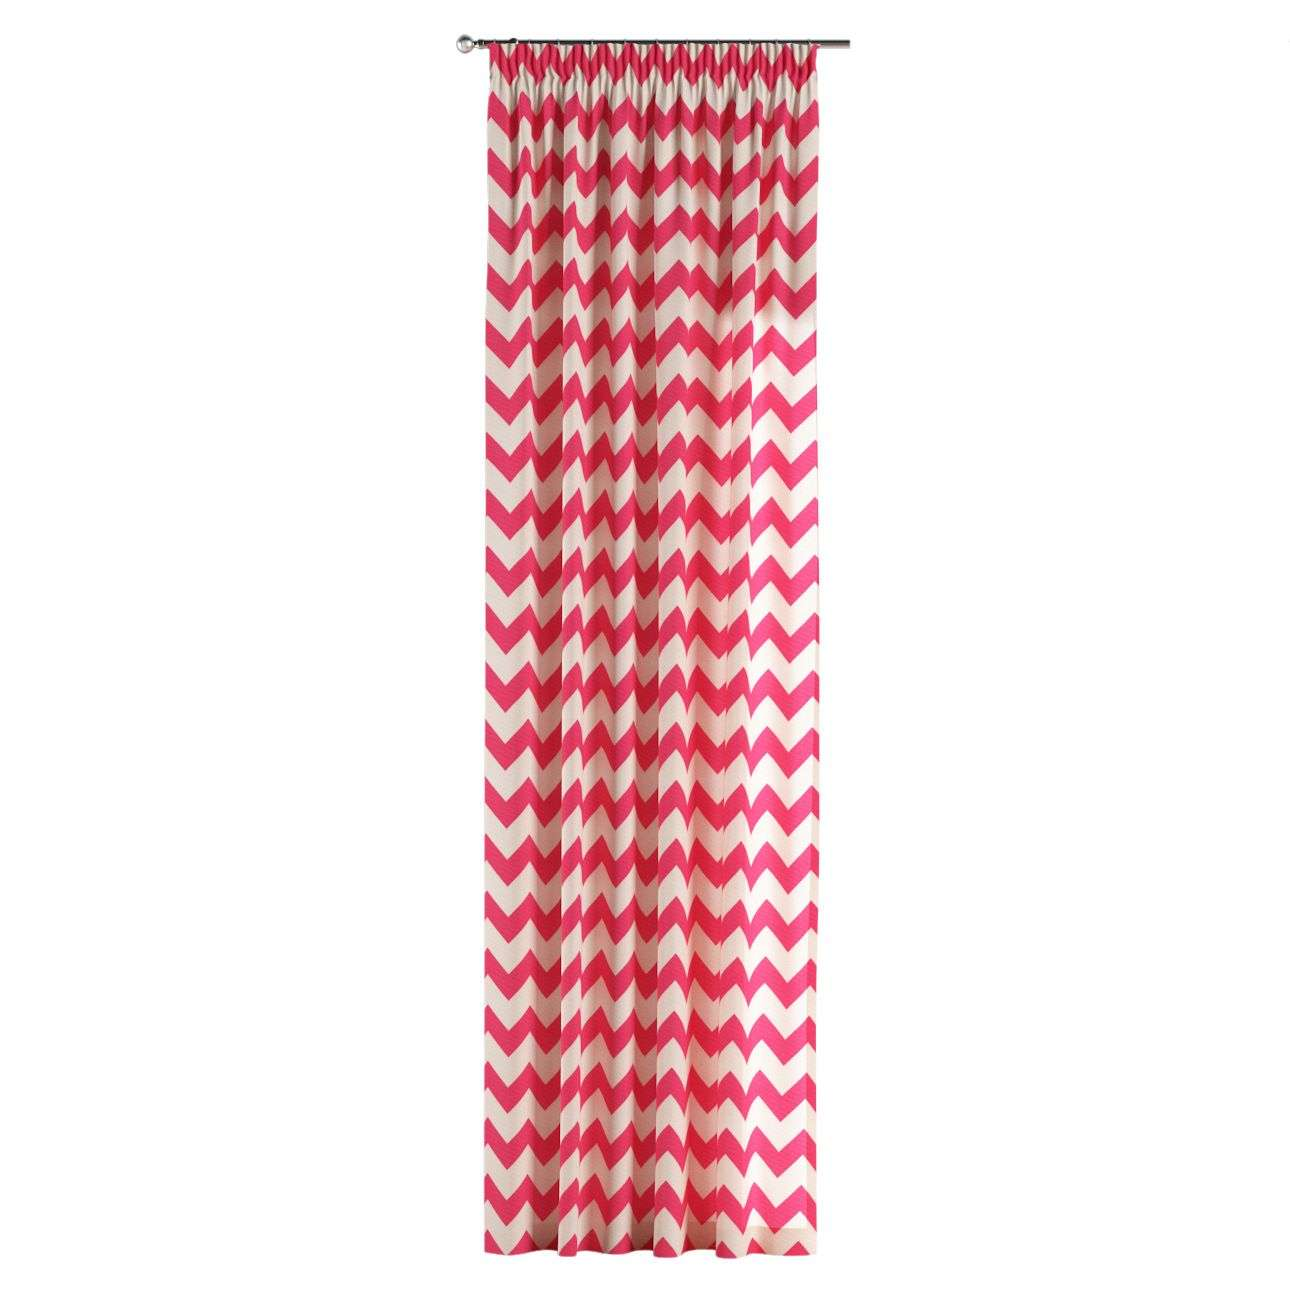 Pencil pleat curtains 130 x 260 cm (51 x 102 inch) in collection Comic Book & Geo Prints, fabric: 135-00